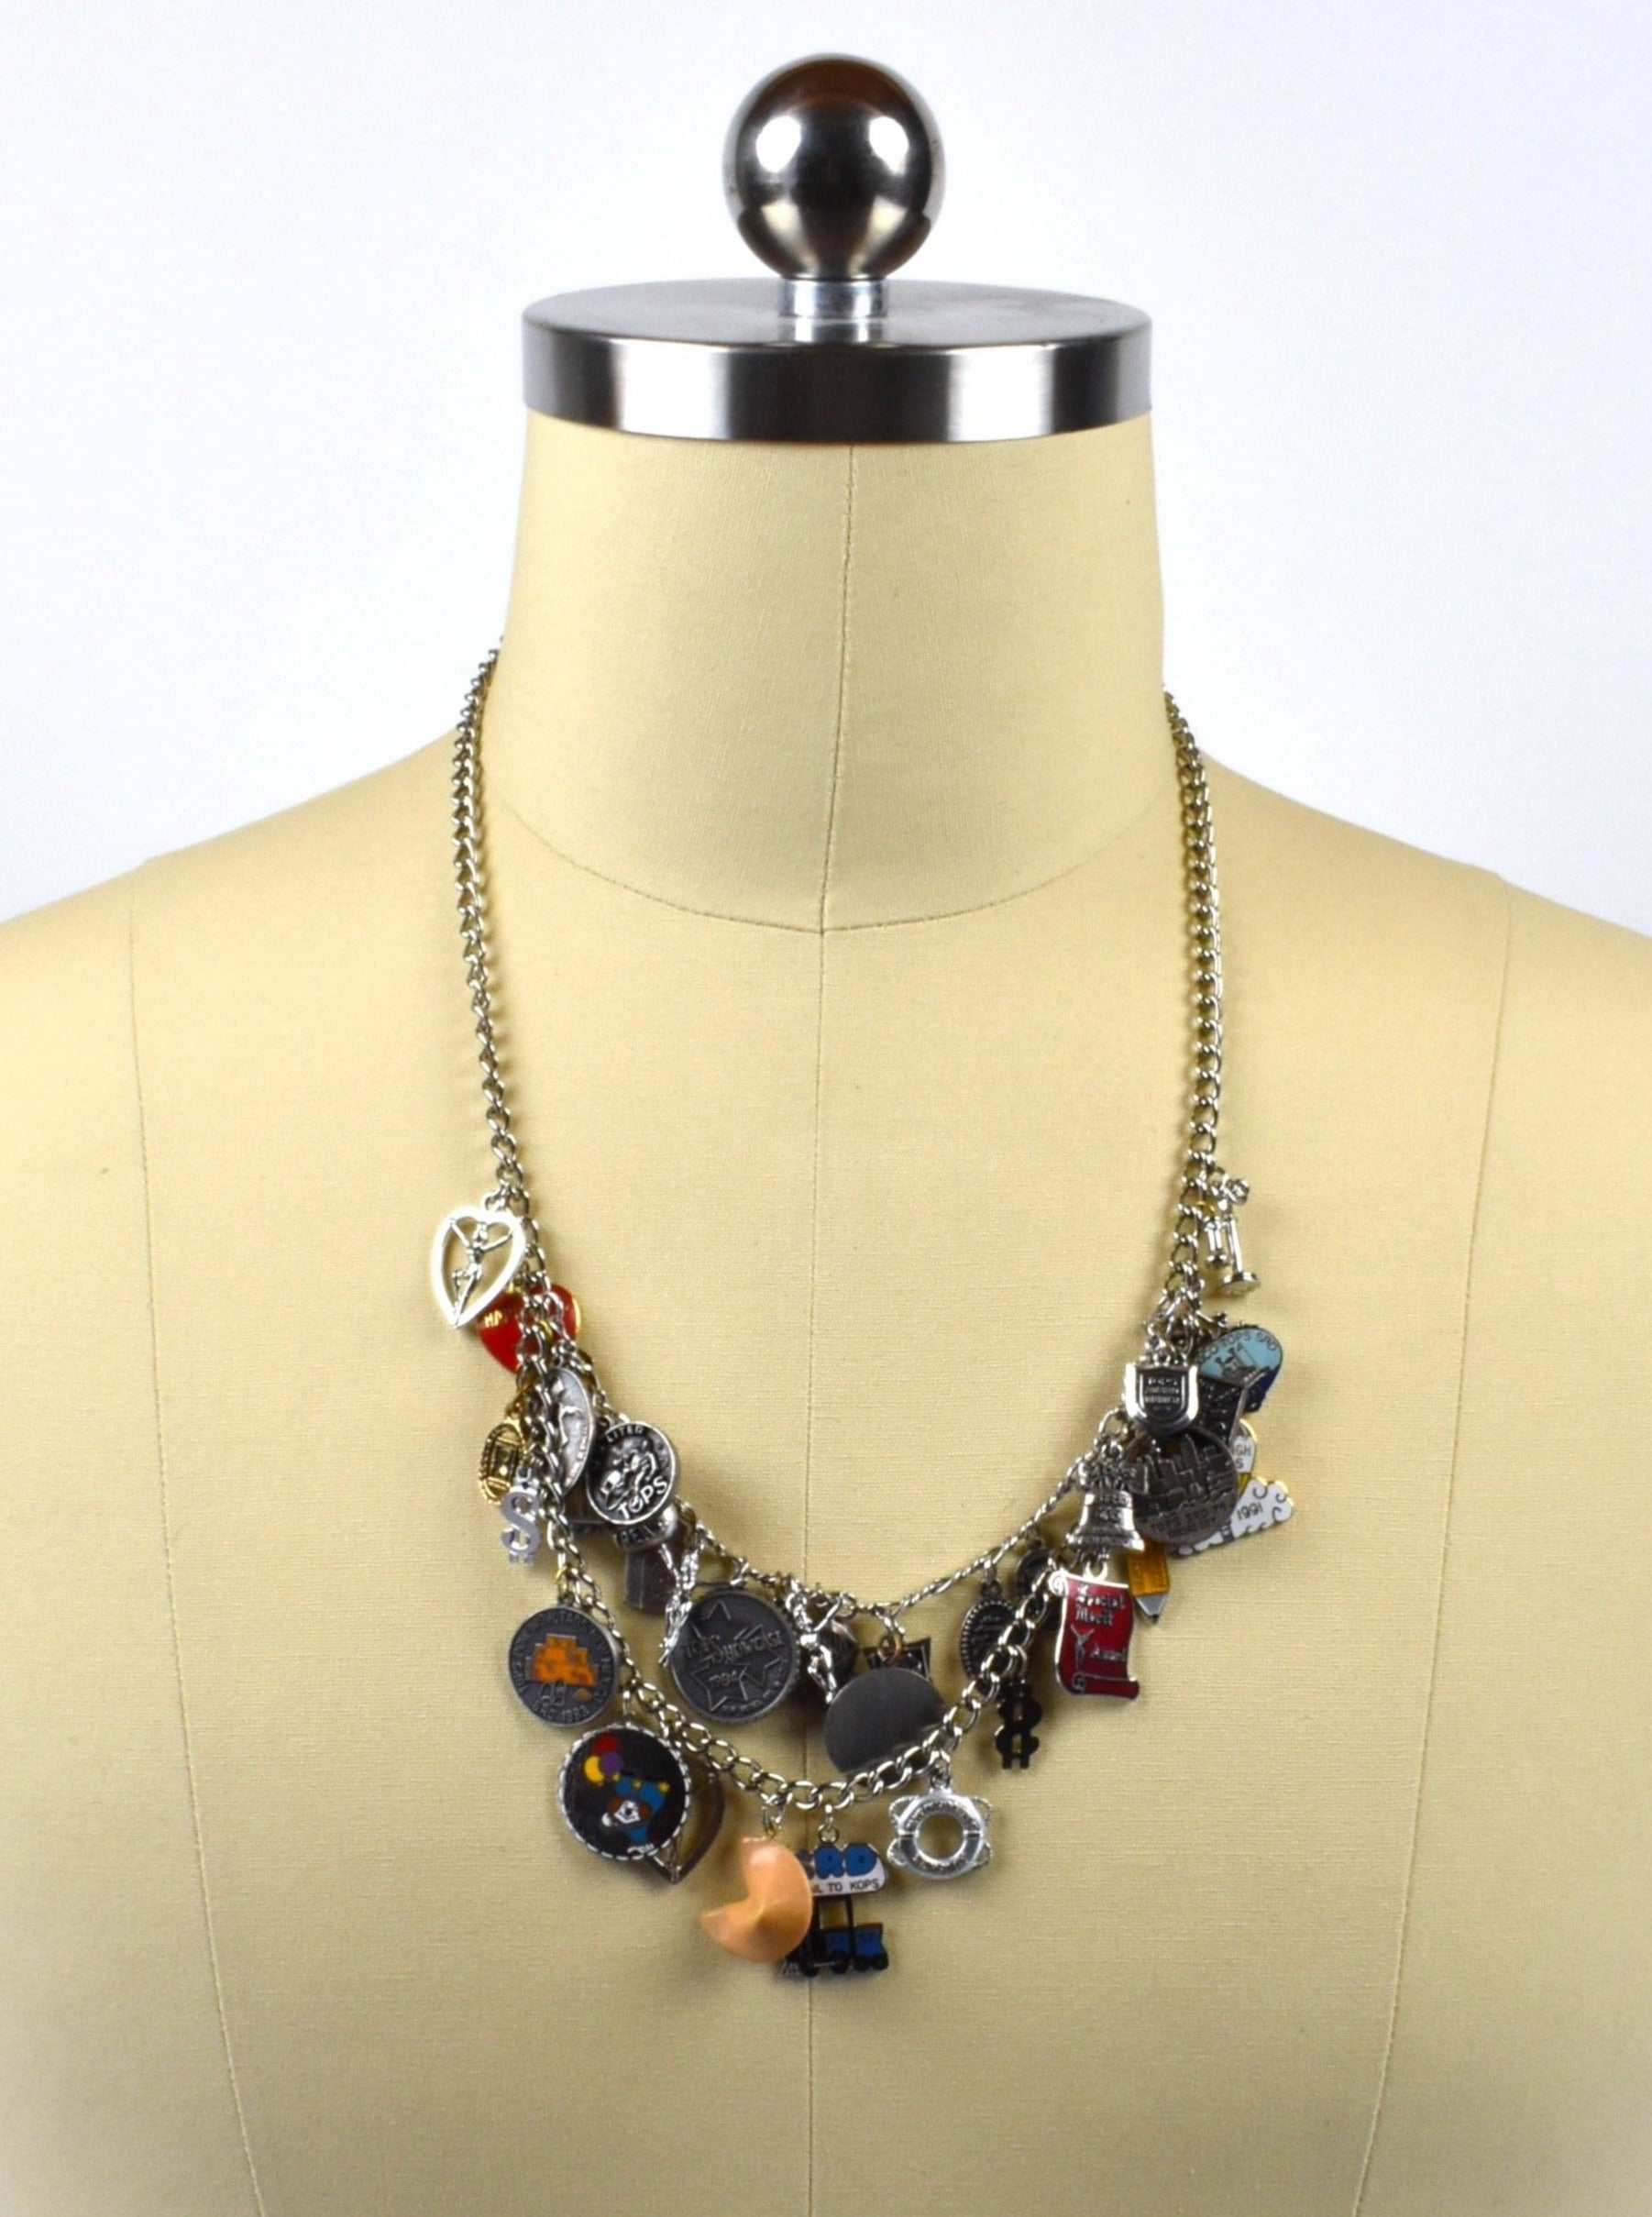 1980's-1990's TOPS Large Collection Charm Necklace